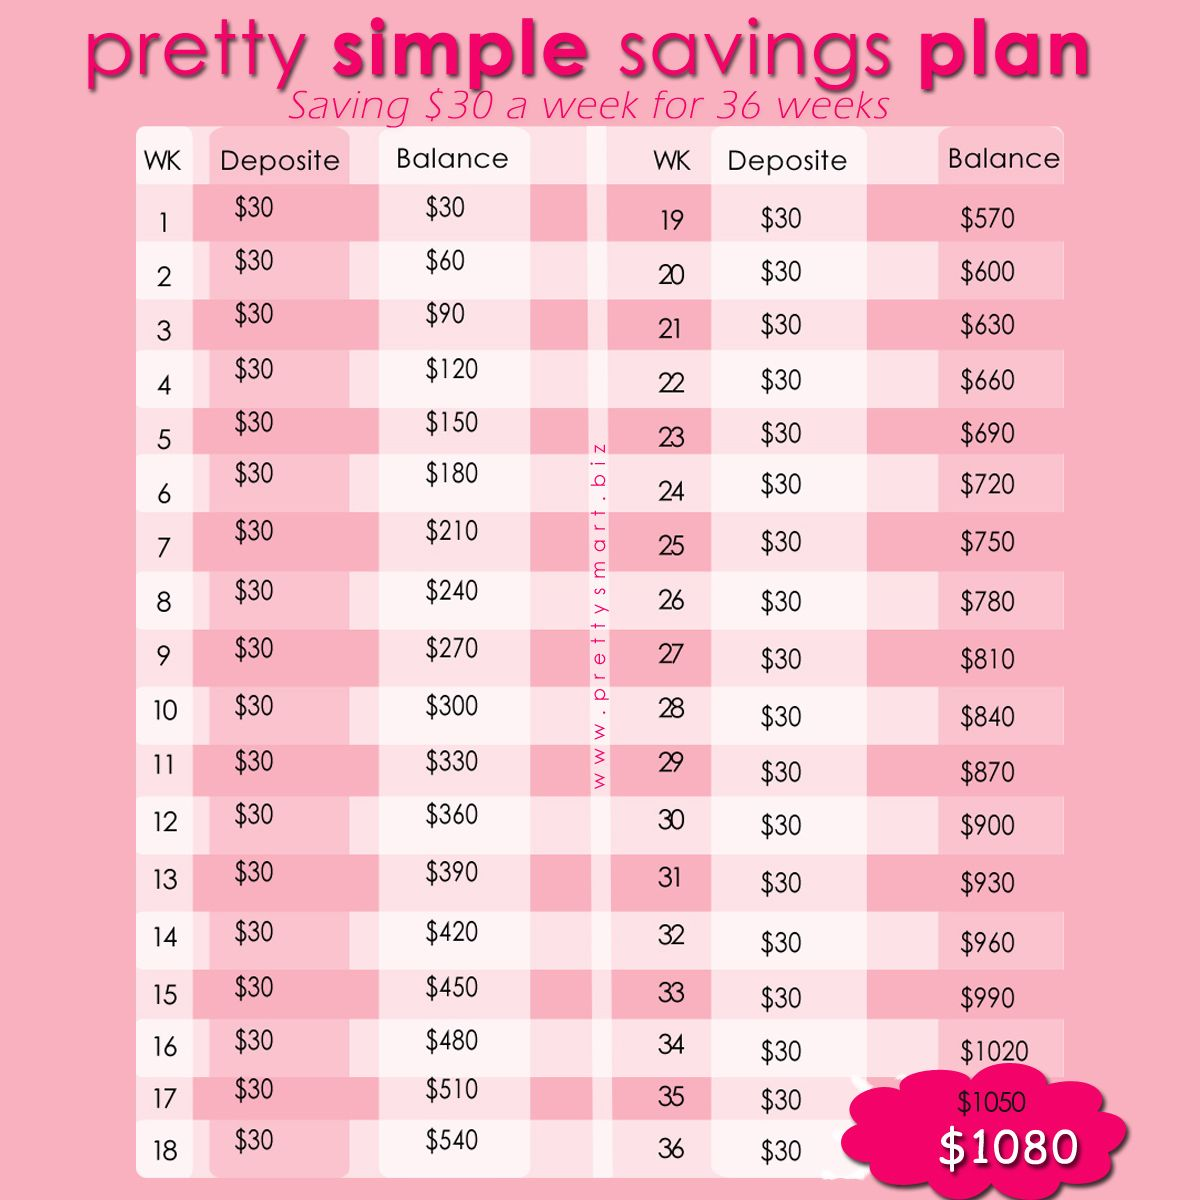 my  30 for 36 weeks savings plan is pretty simple about  4